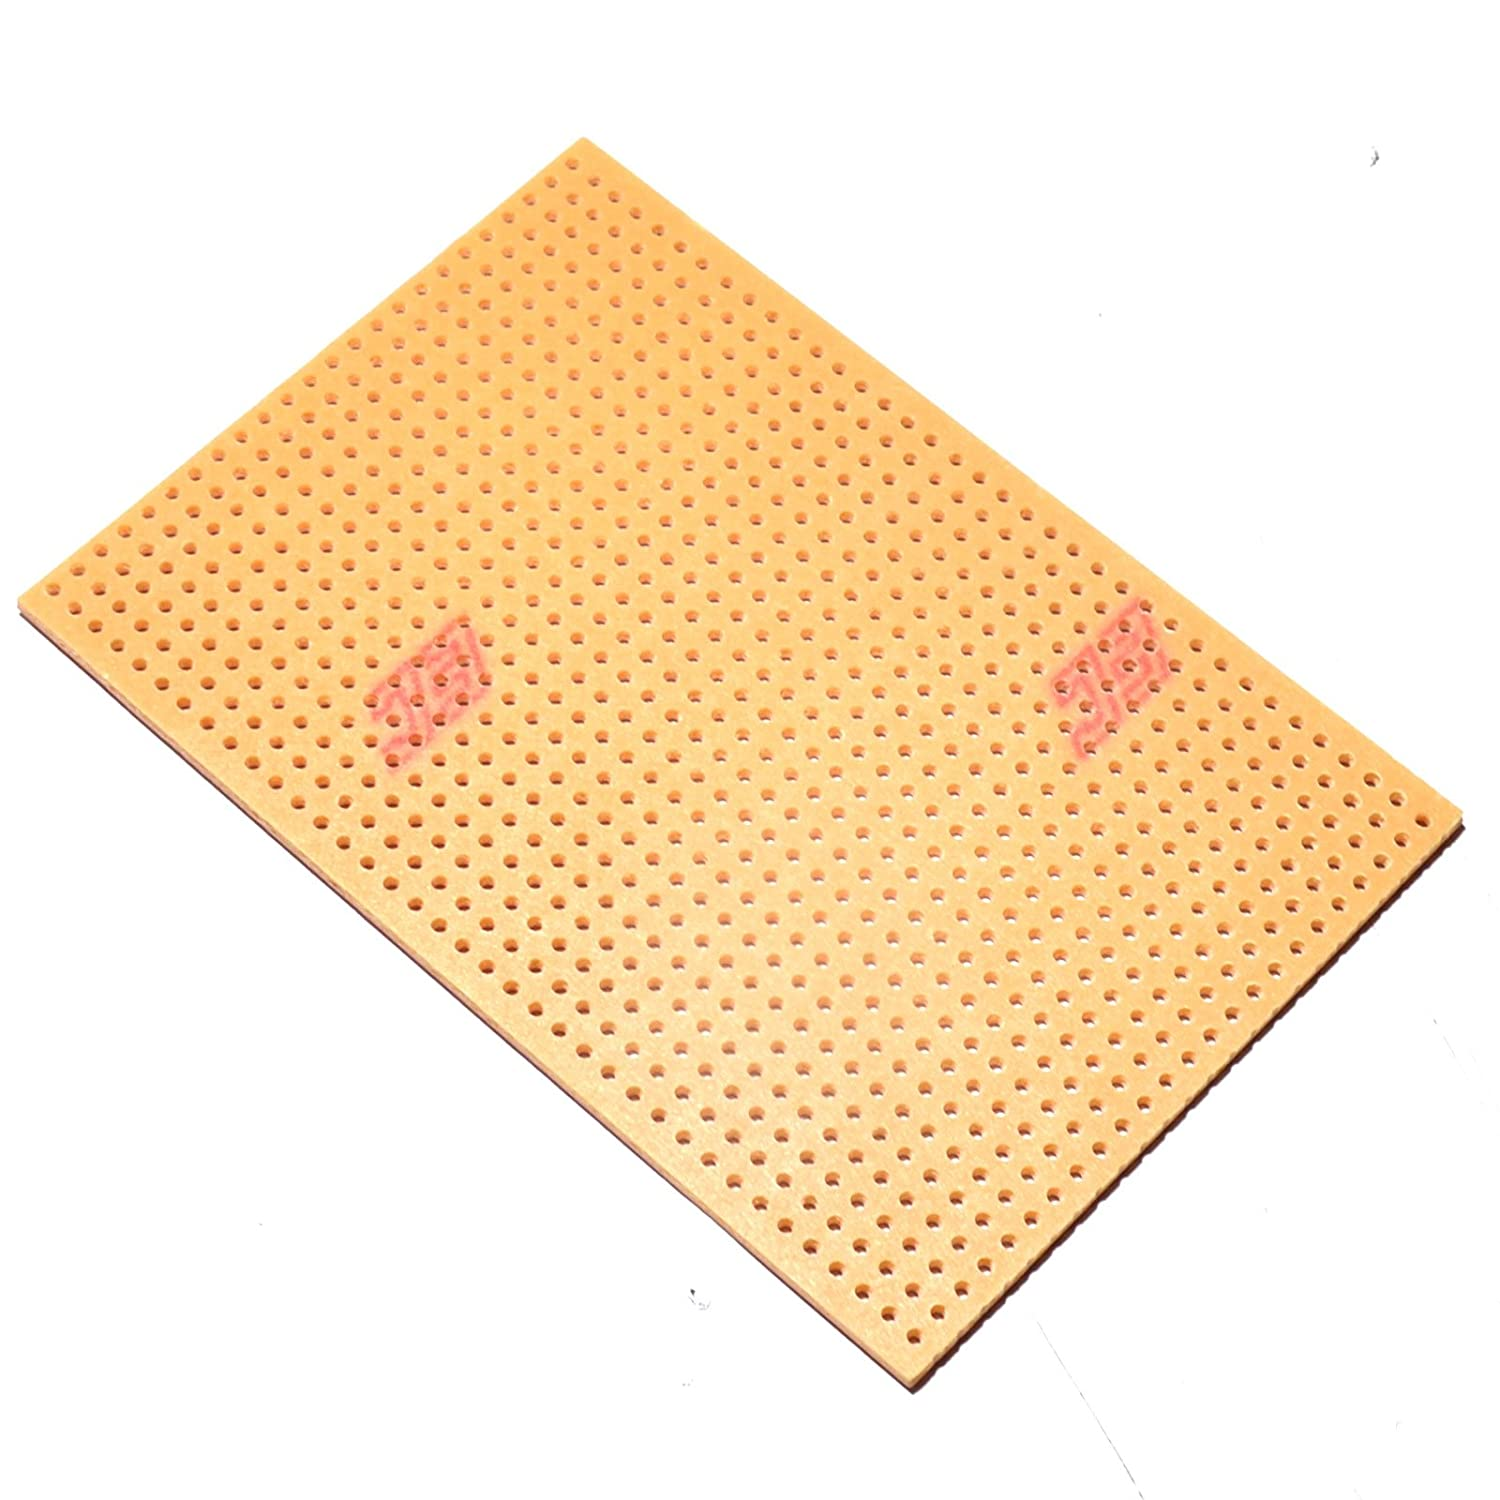 1 sheet of vero board for prototyping copper clad strip board 64mm x 95mm1 sheet of vero board for prototyping copper clad strip board 64mm x 95mm amazon co uk business, industry \u0026 science